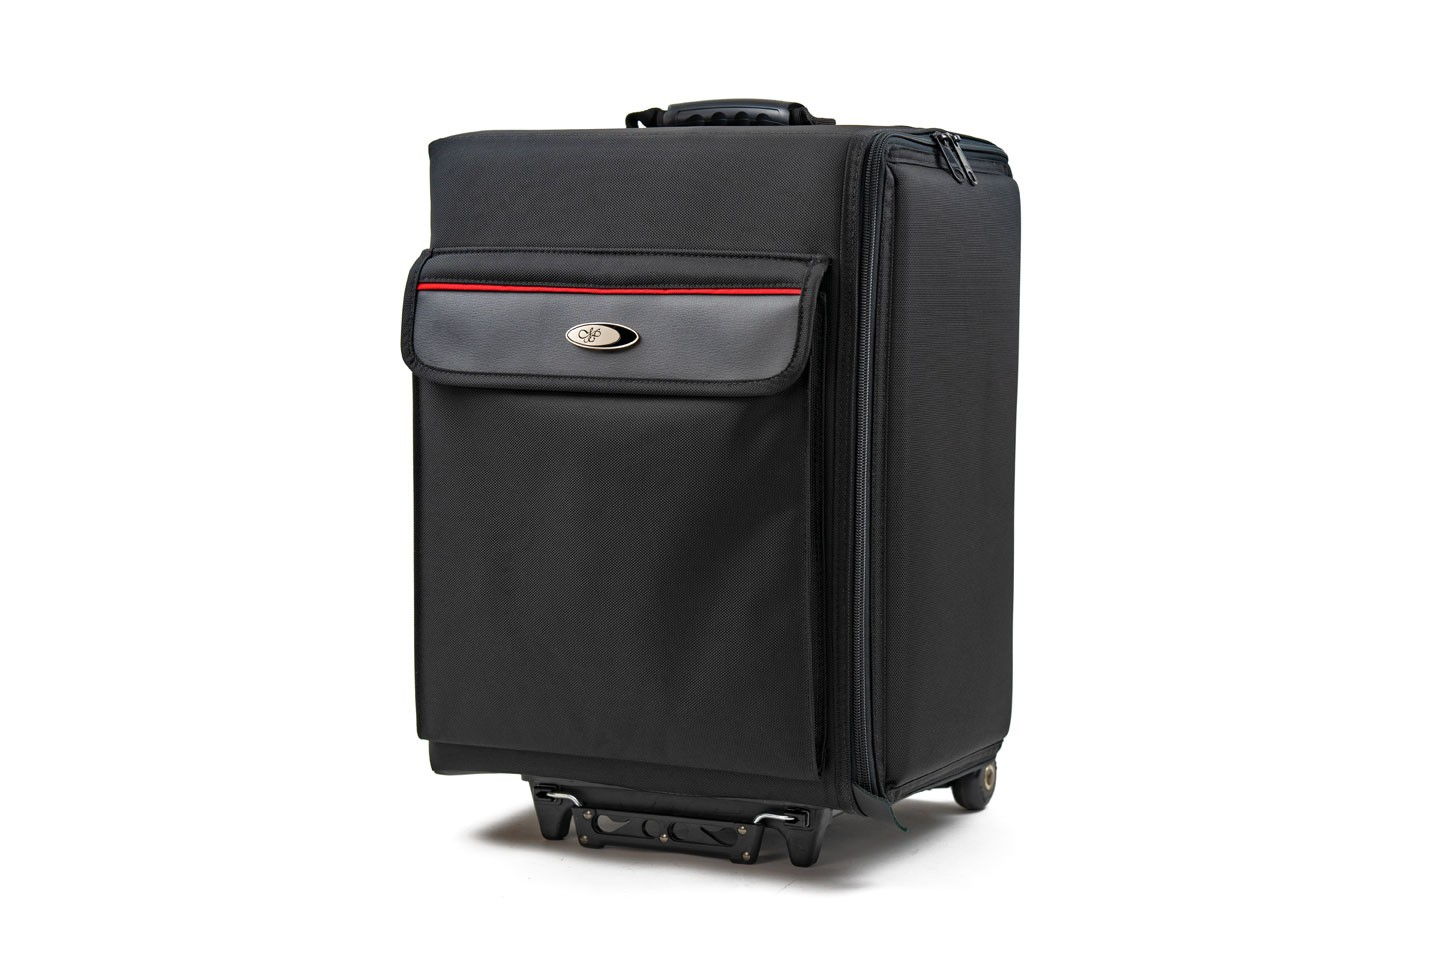 <h1>MXLTLUG 5</h1><p>Five Laptop Luggage</p>